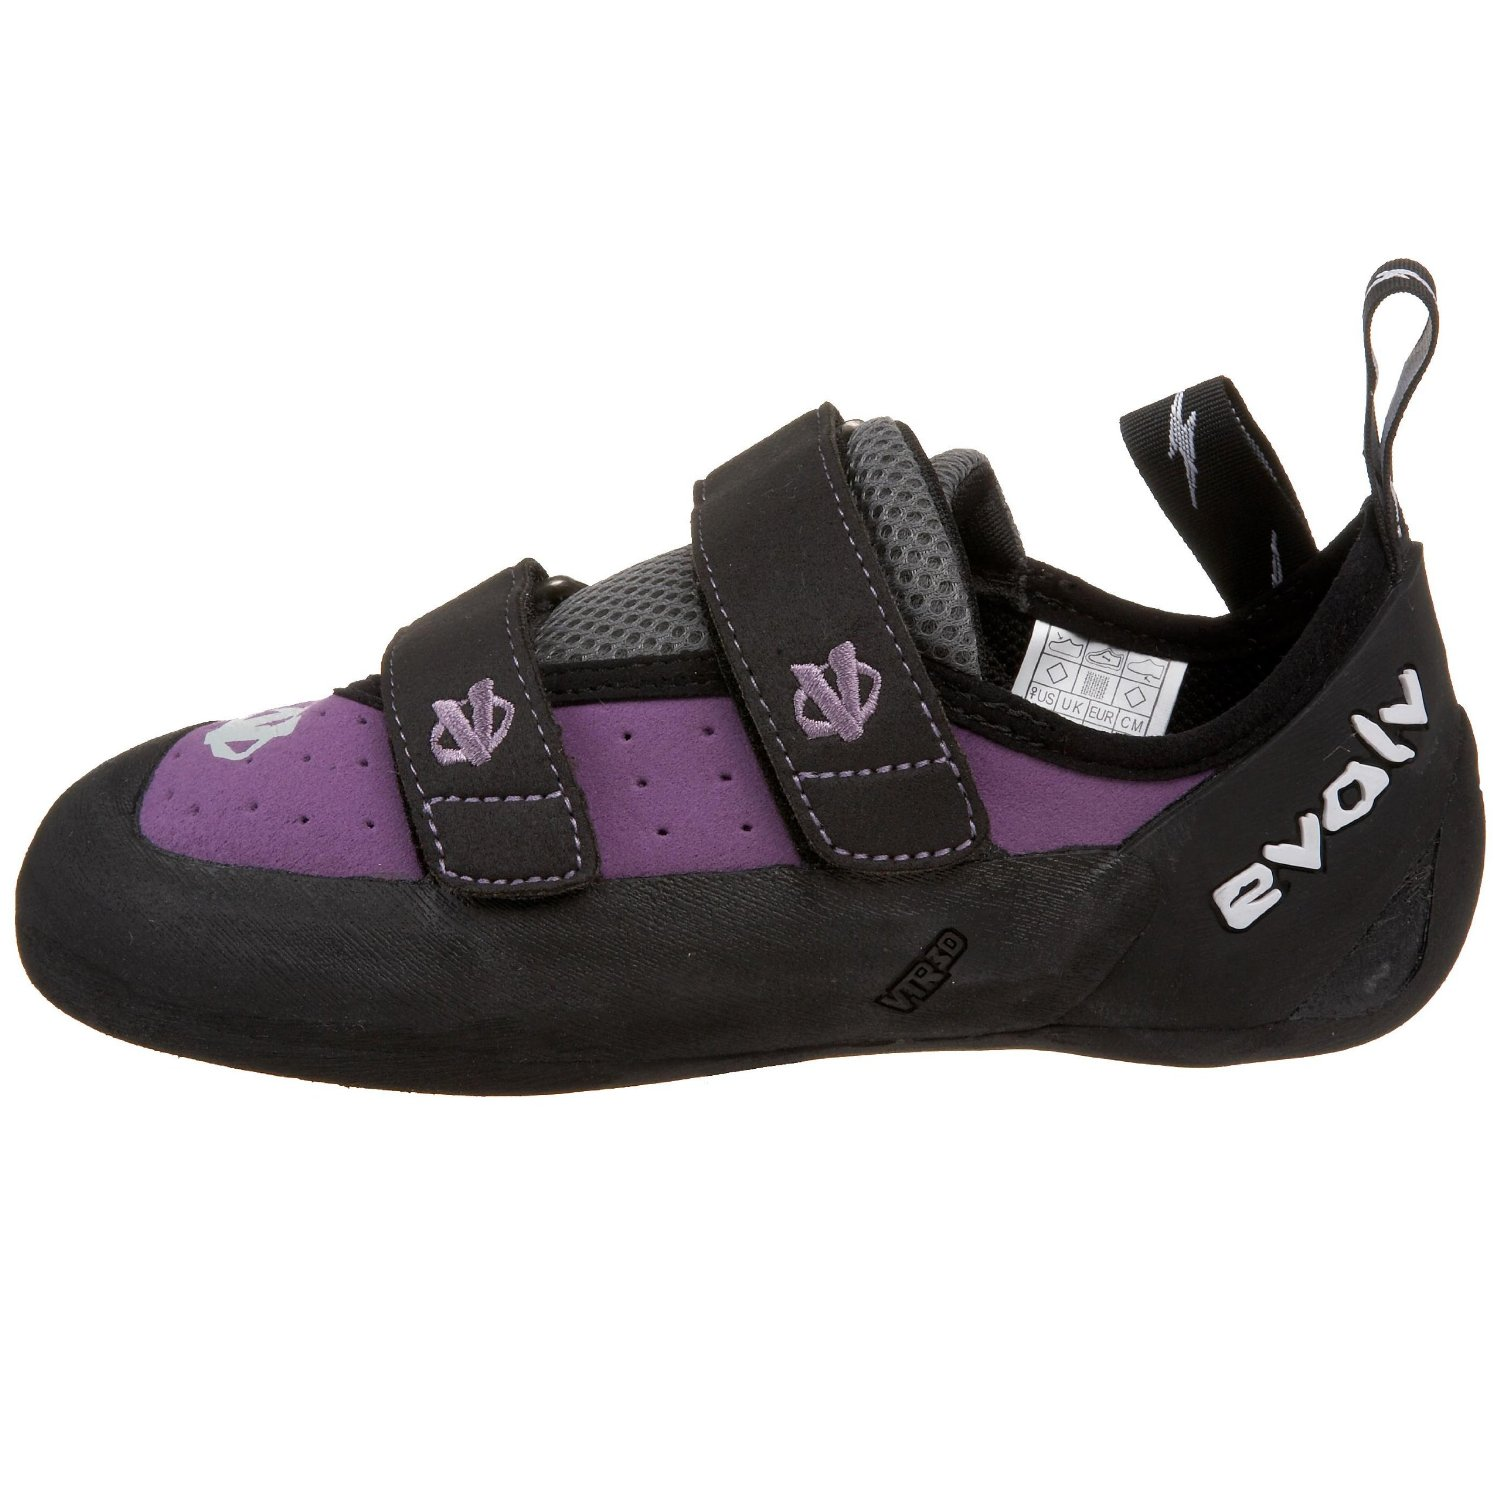 Evolv Womens Climbing Shoes